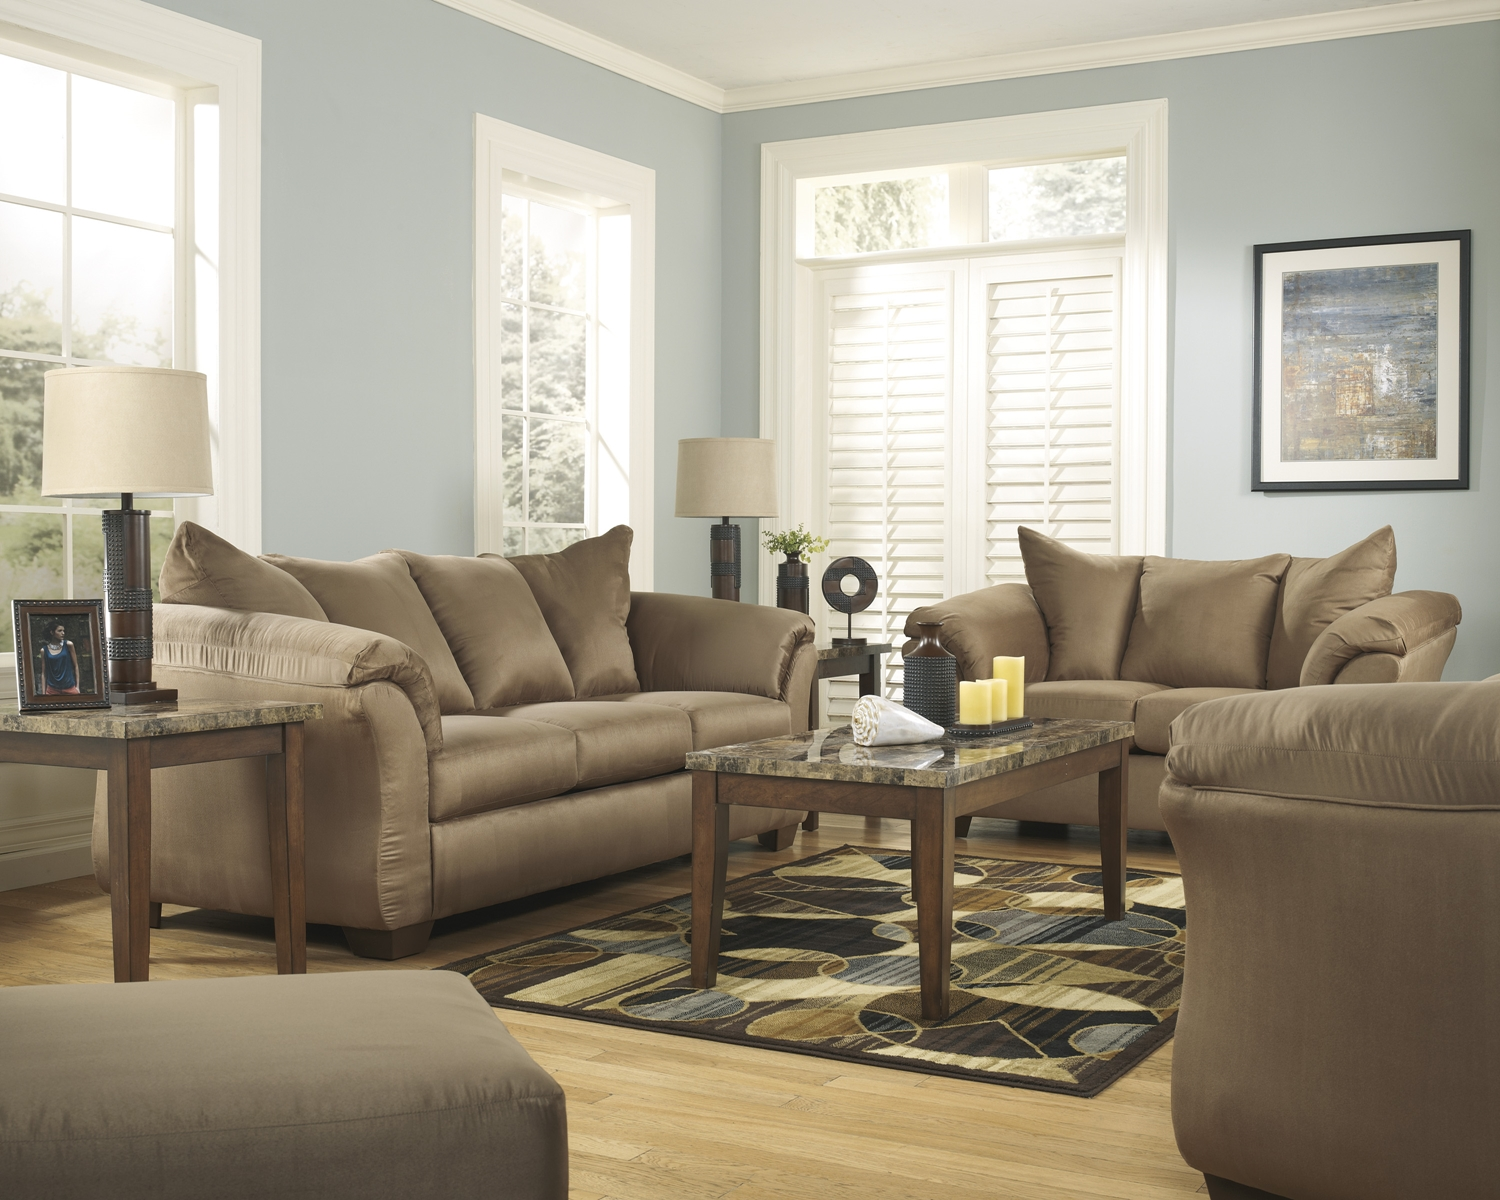 Modern Camel Tone Plush Upholstered Sofa And Loveseat Set